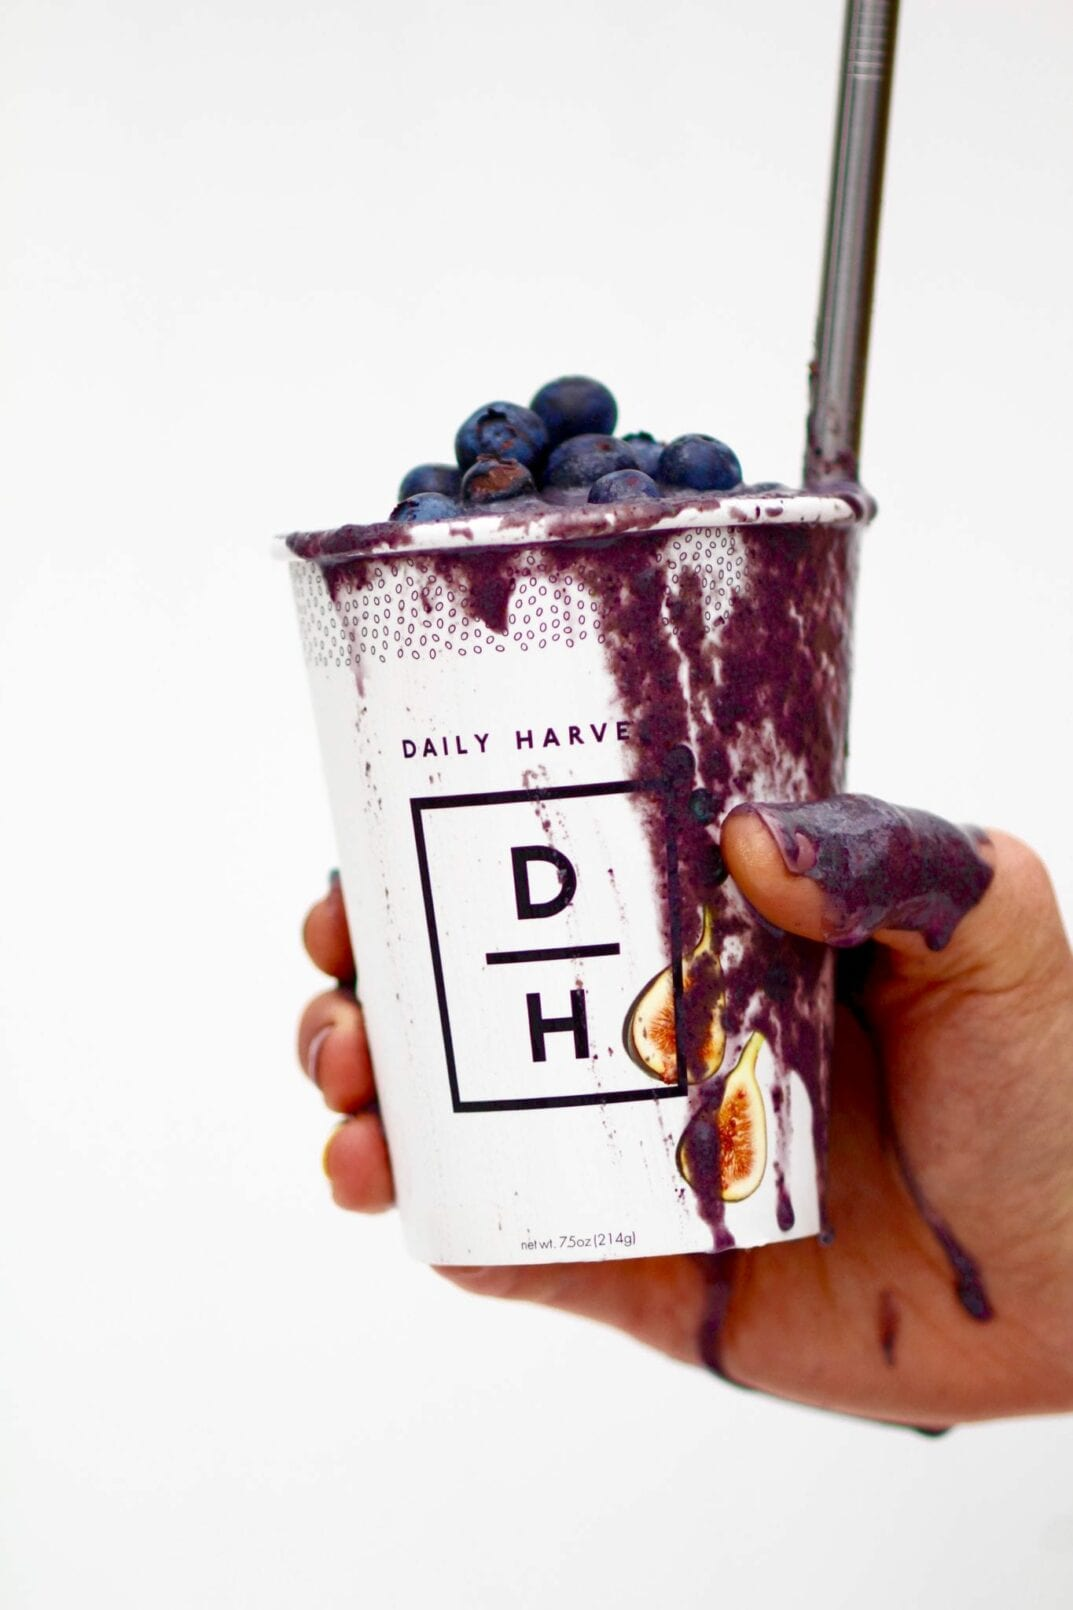 daily harvest blueberry + hemp smoothie